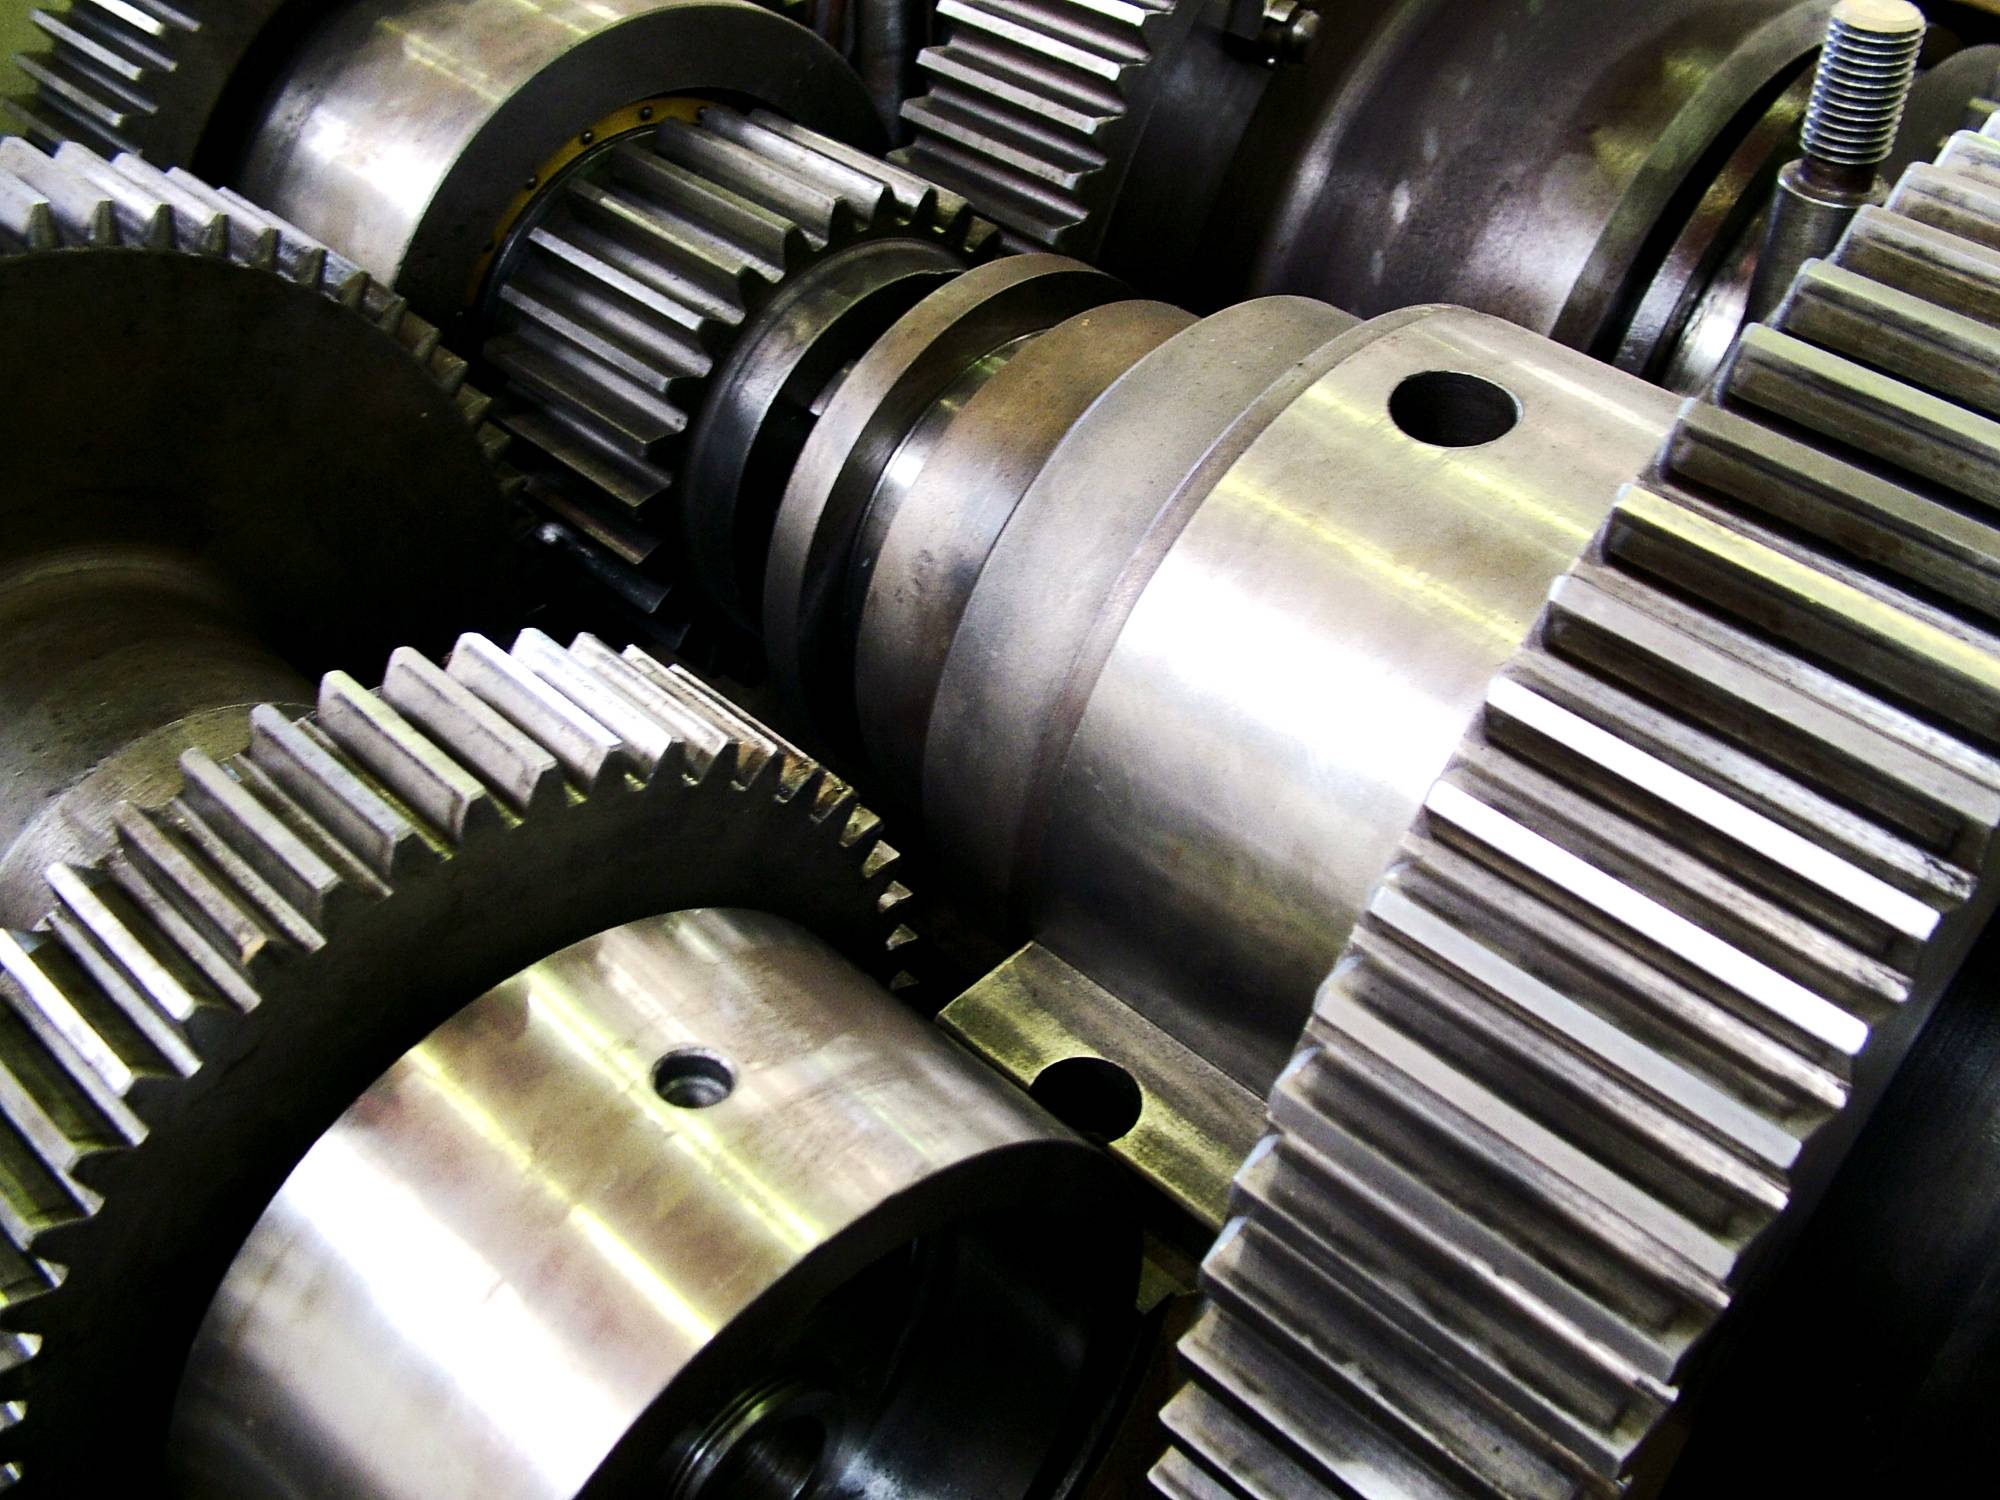 industrial manufacturing strategy consulting wga consulting llc